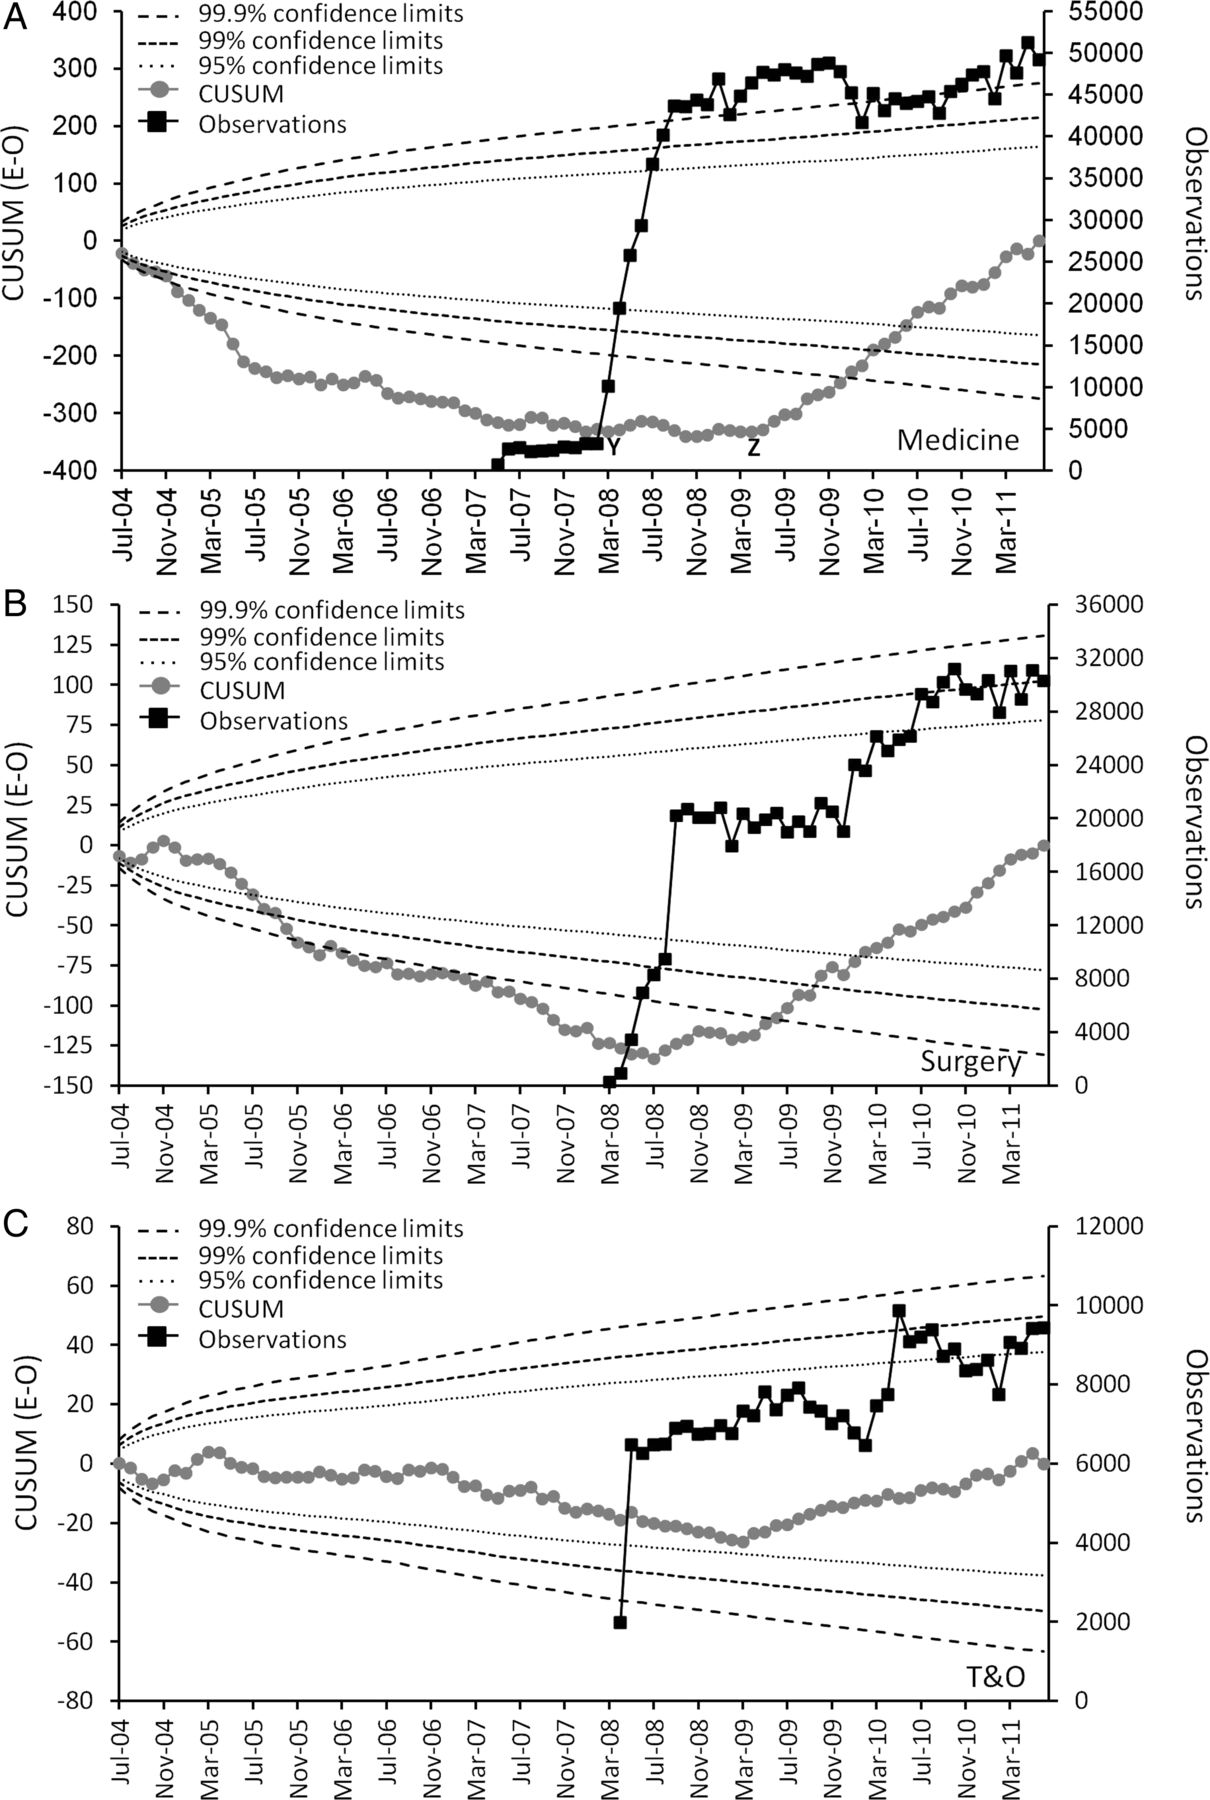 Impact of introducing an electronic physiological